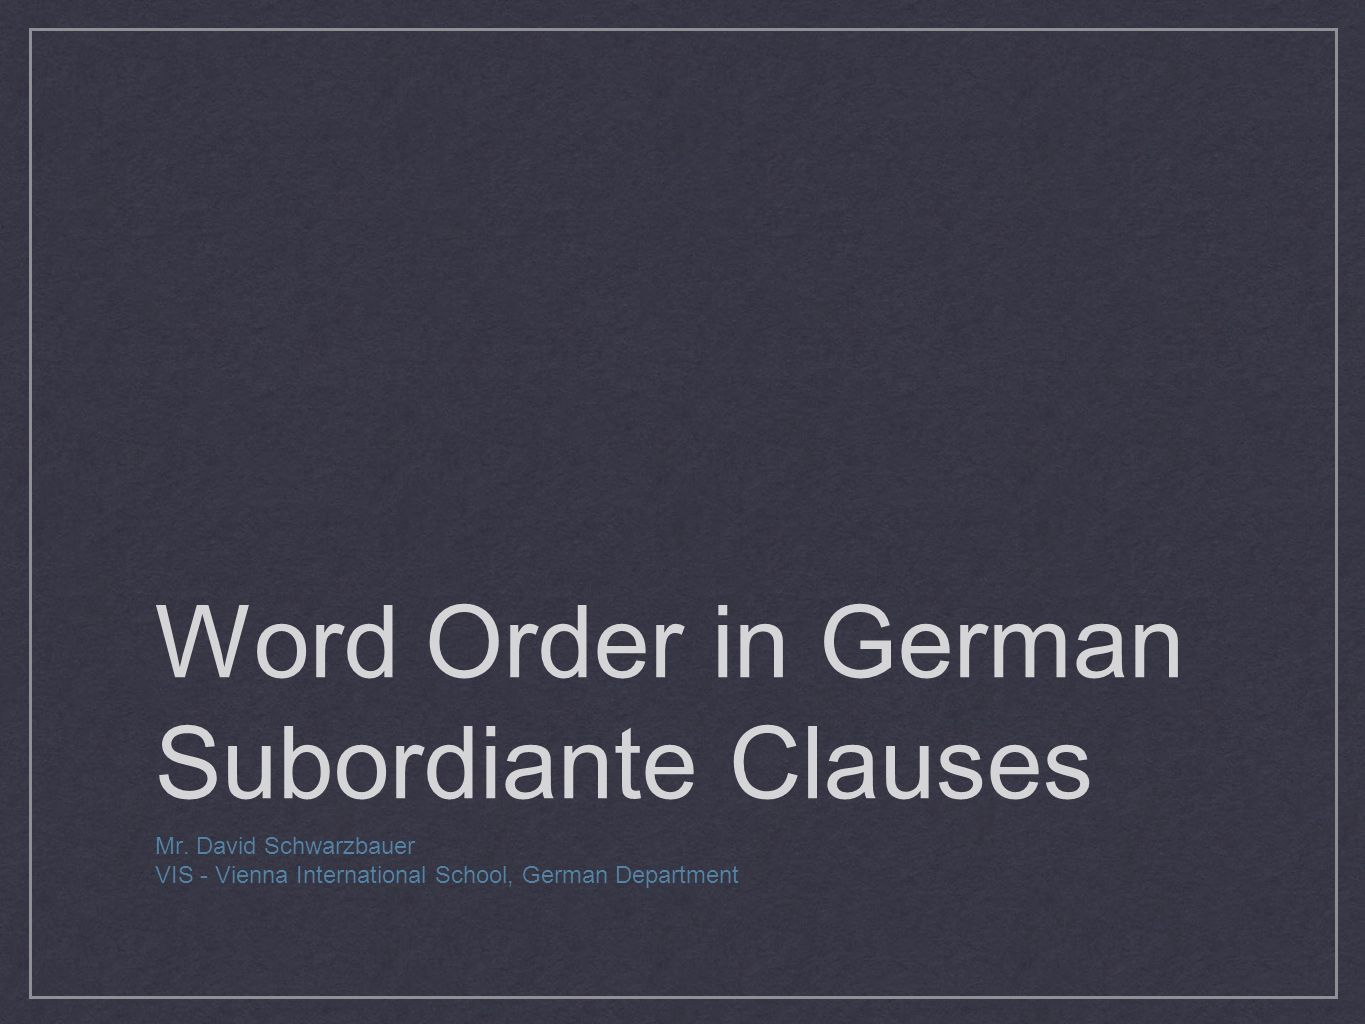 Word Order in German Subordinate Clauses If the subordinate clause is at the beginning of a sentence and followed by a main clause, it goes like this: Ich lebe in Wien, wenn dort Sommer ist.